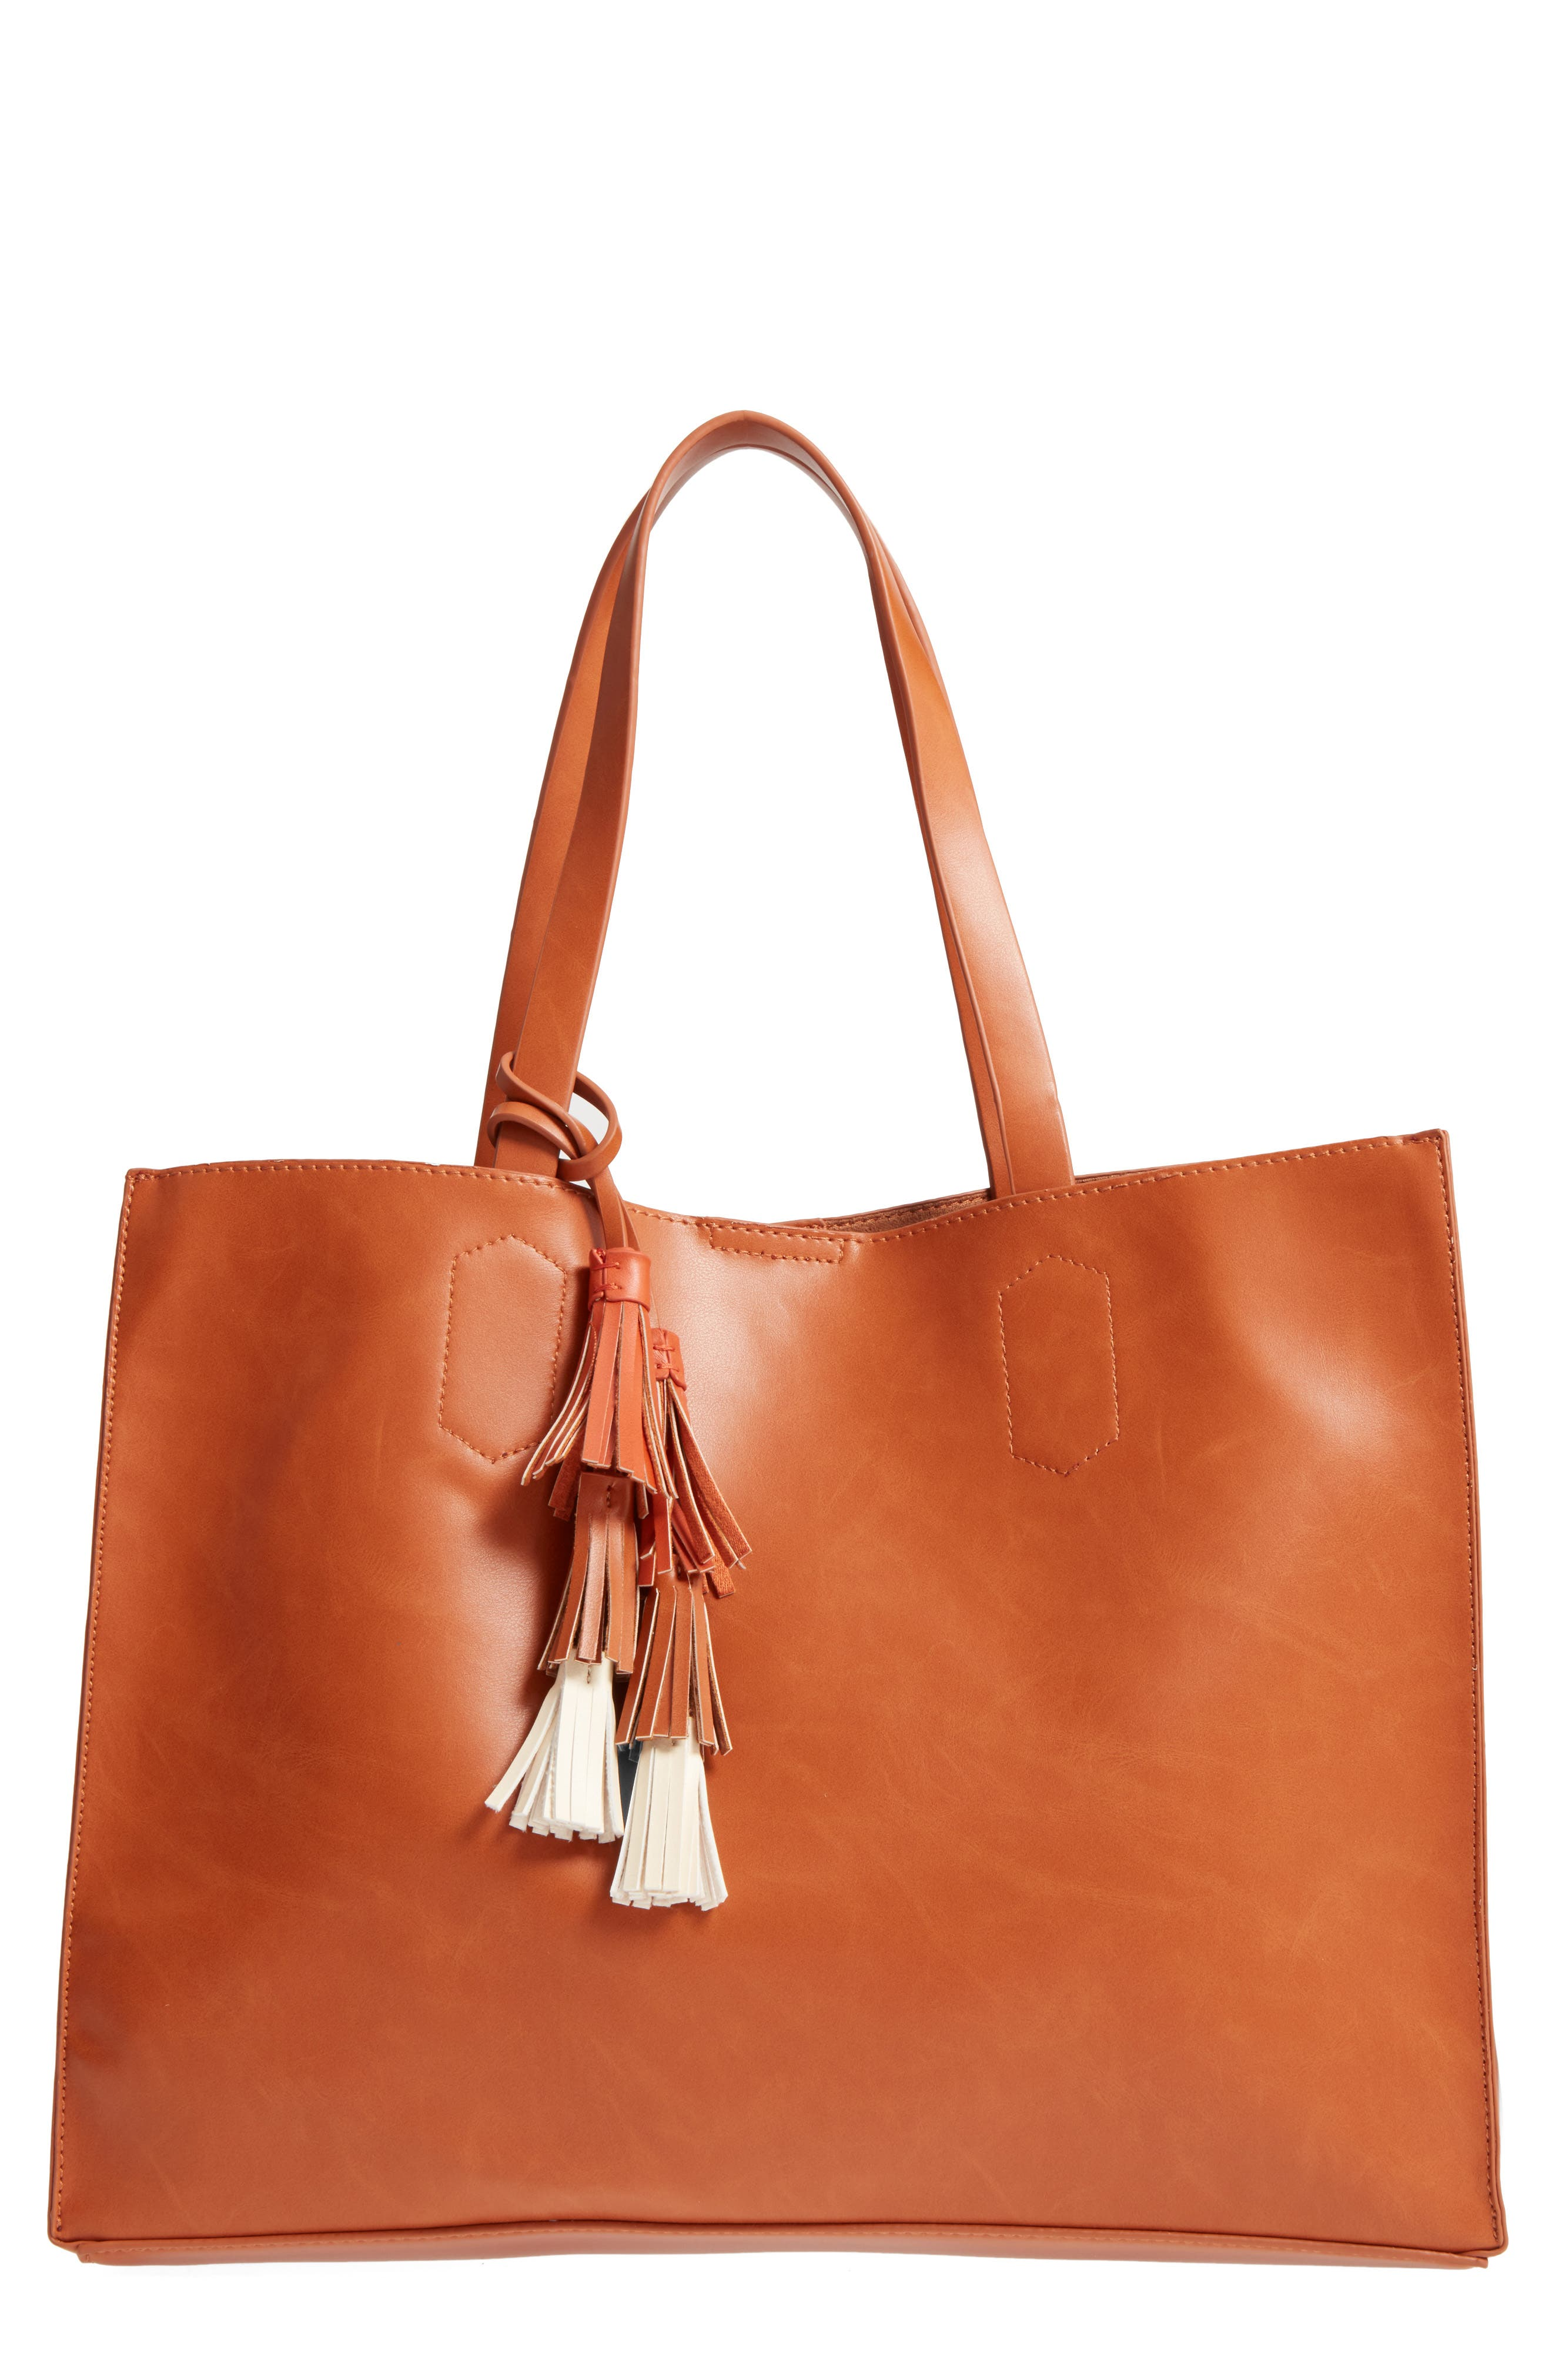 Emperia Tassel Faux Leather Tote